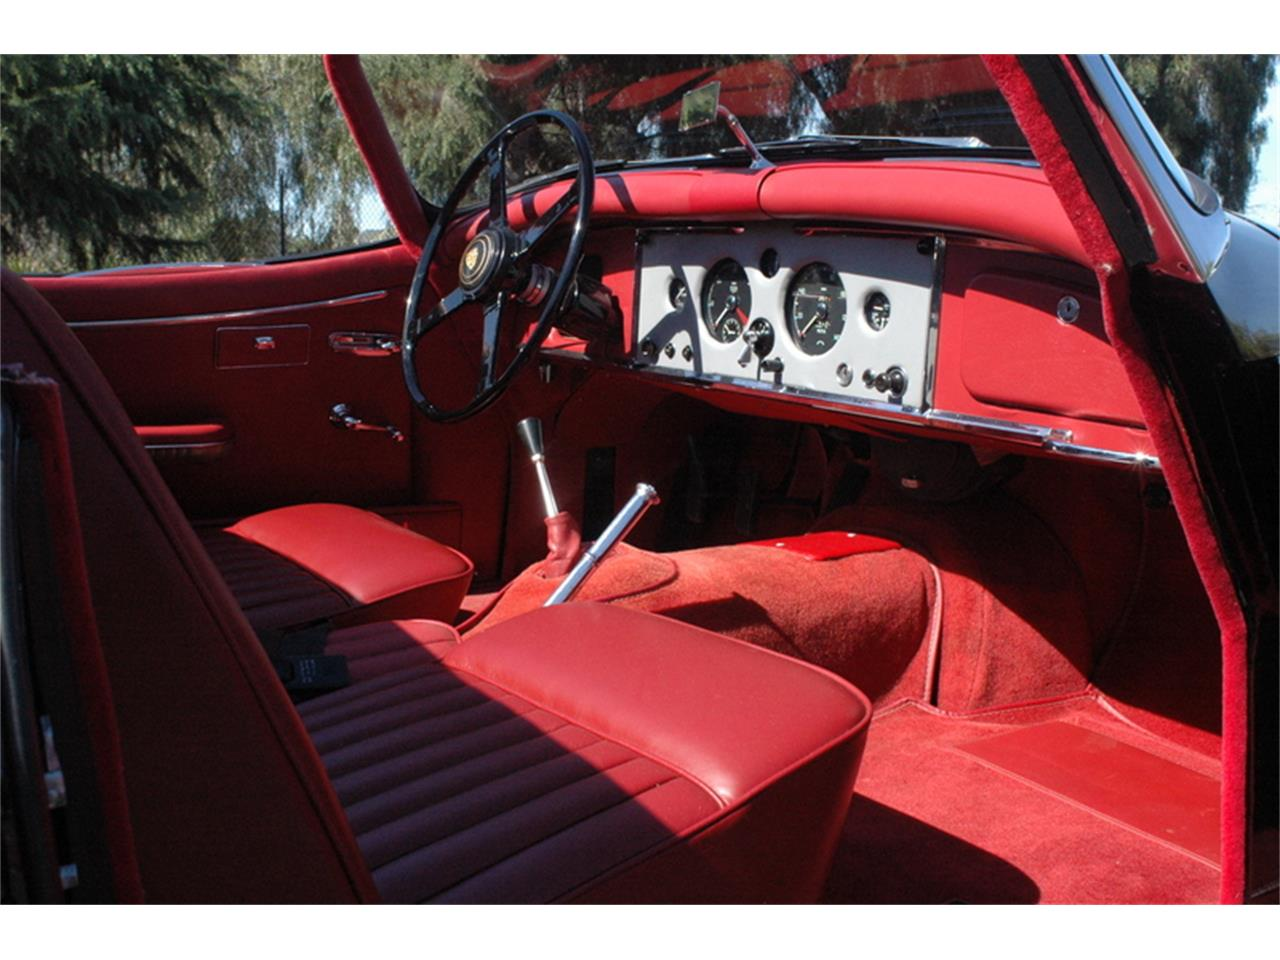 Large Picture of '58 XK150 located in California - $189,000.00 Offered by a Private Seller - KR1G